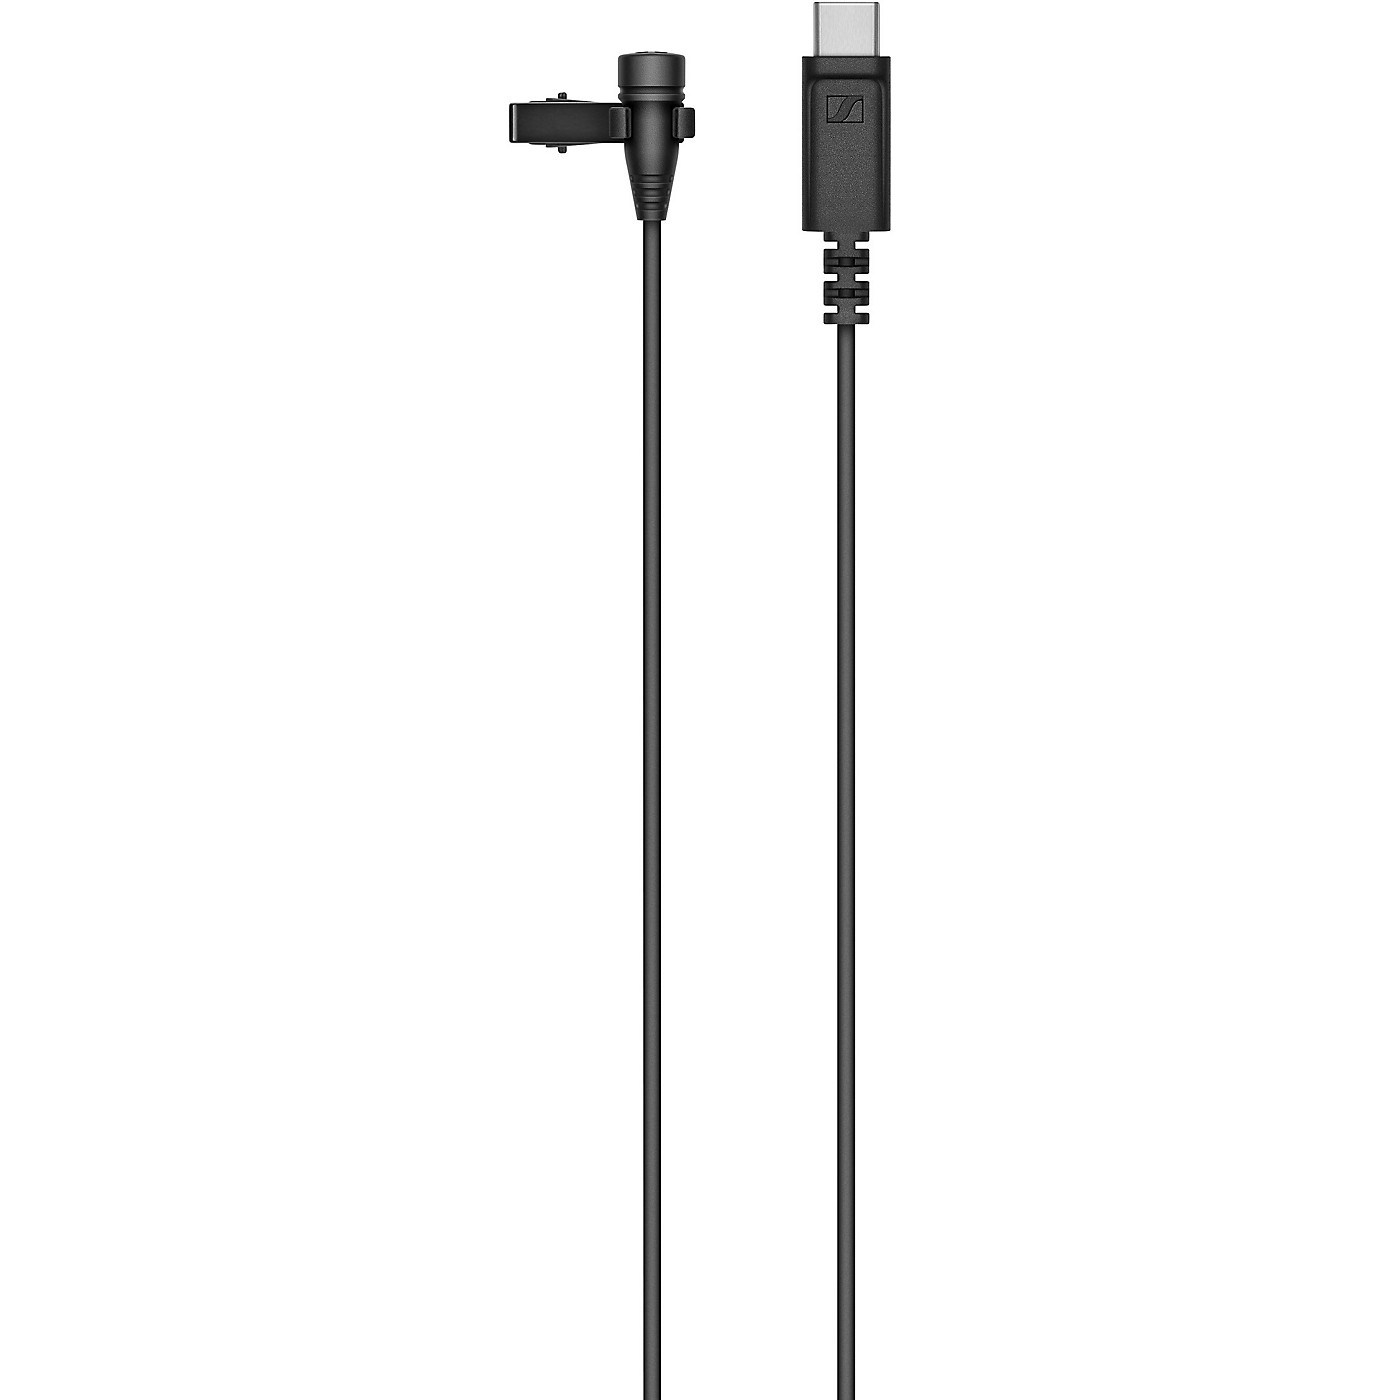 Sennheiser CL 35 USB-C - Designed for MKE 200, MKE 400 and XS Wireless Digital Portable Receiver (RX 35) thumbnail